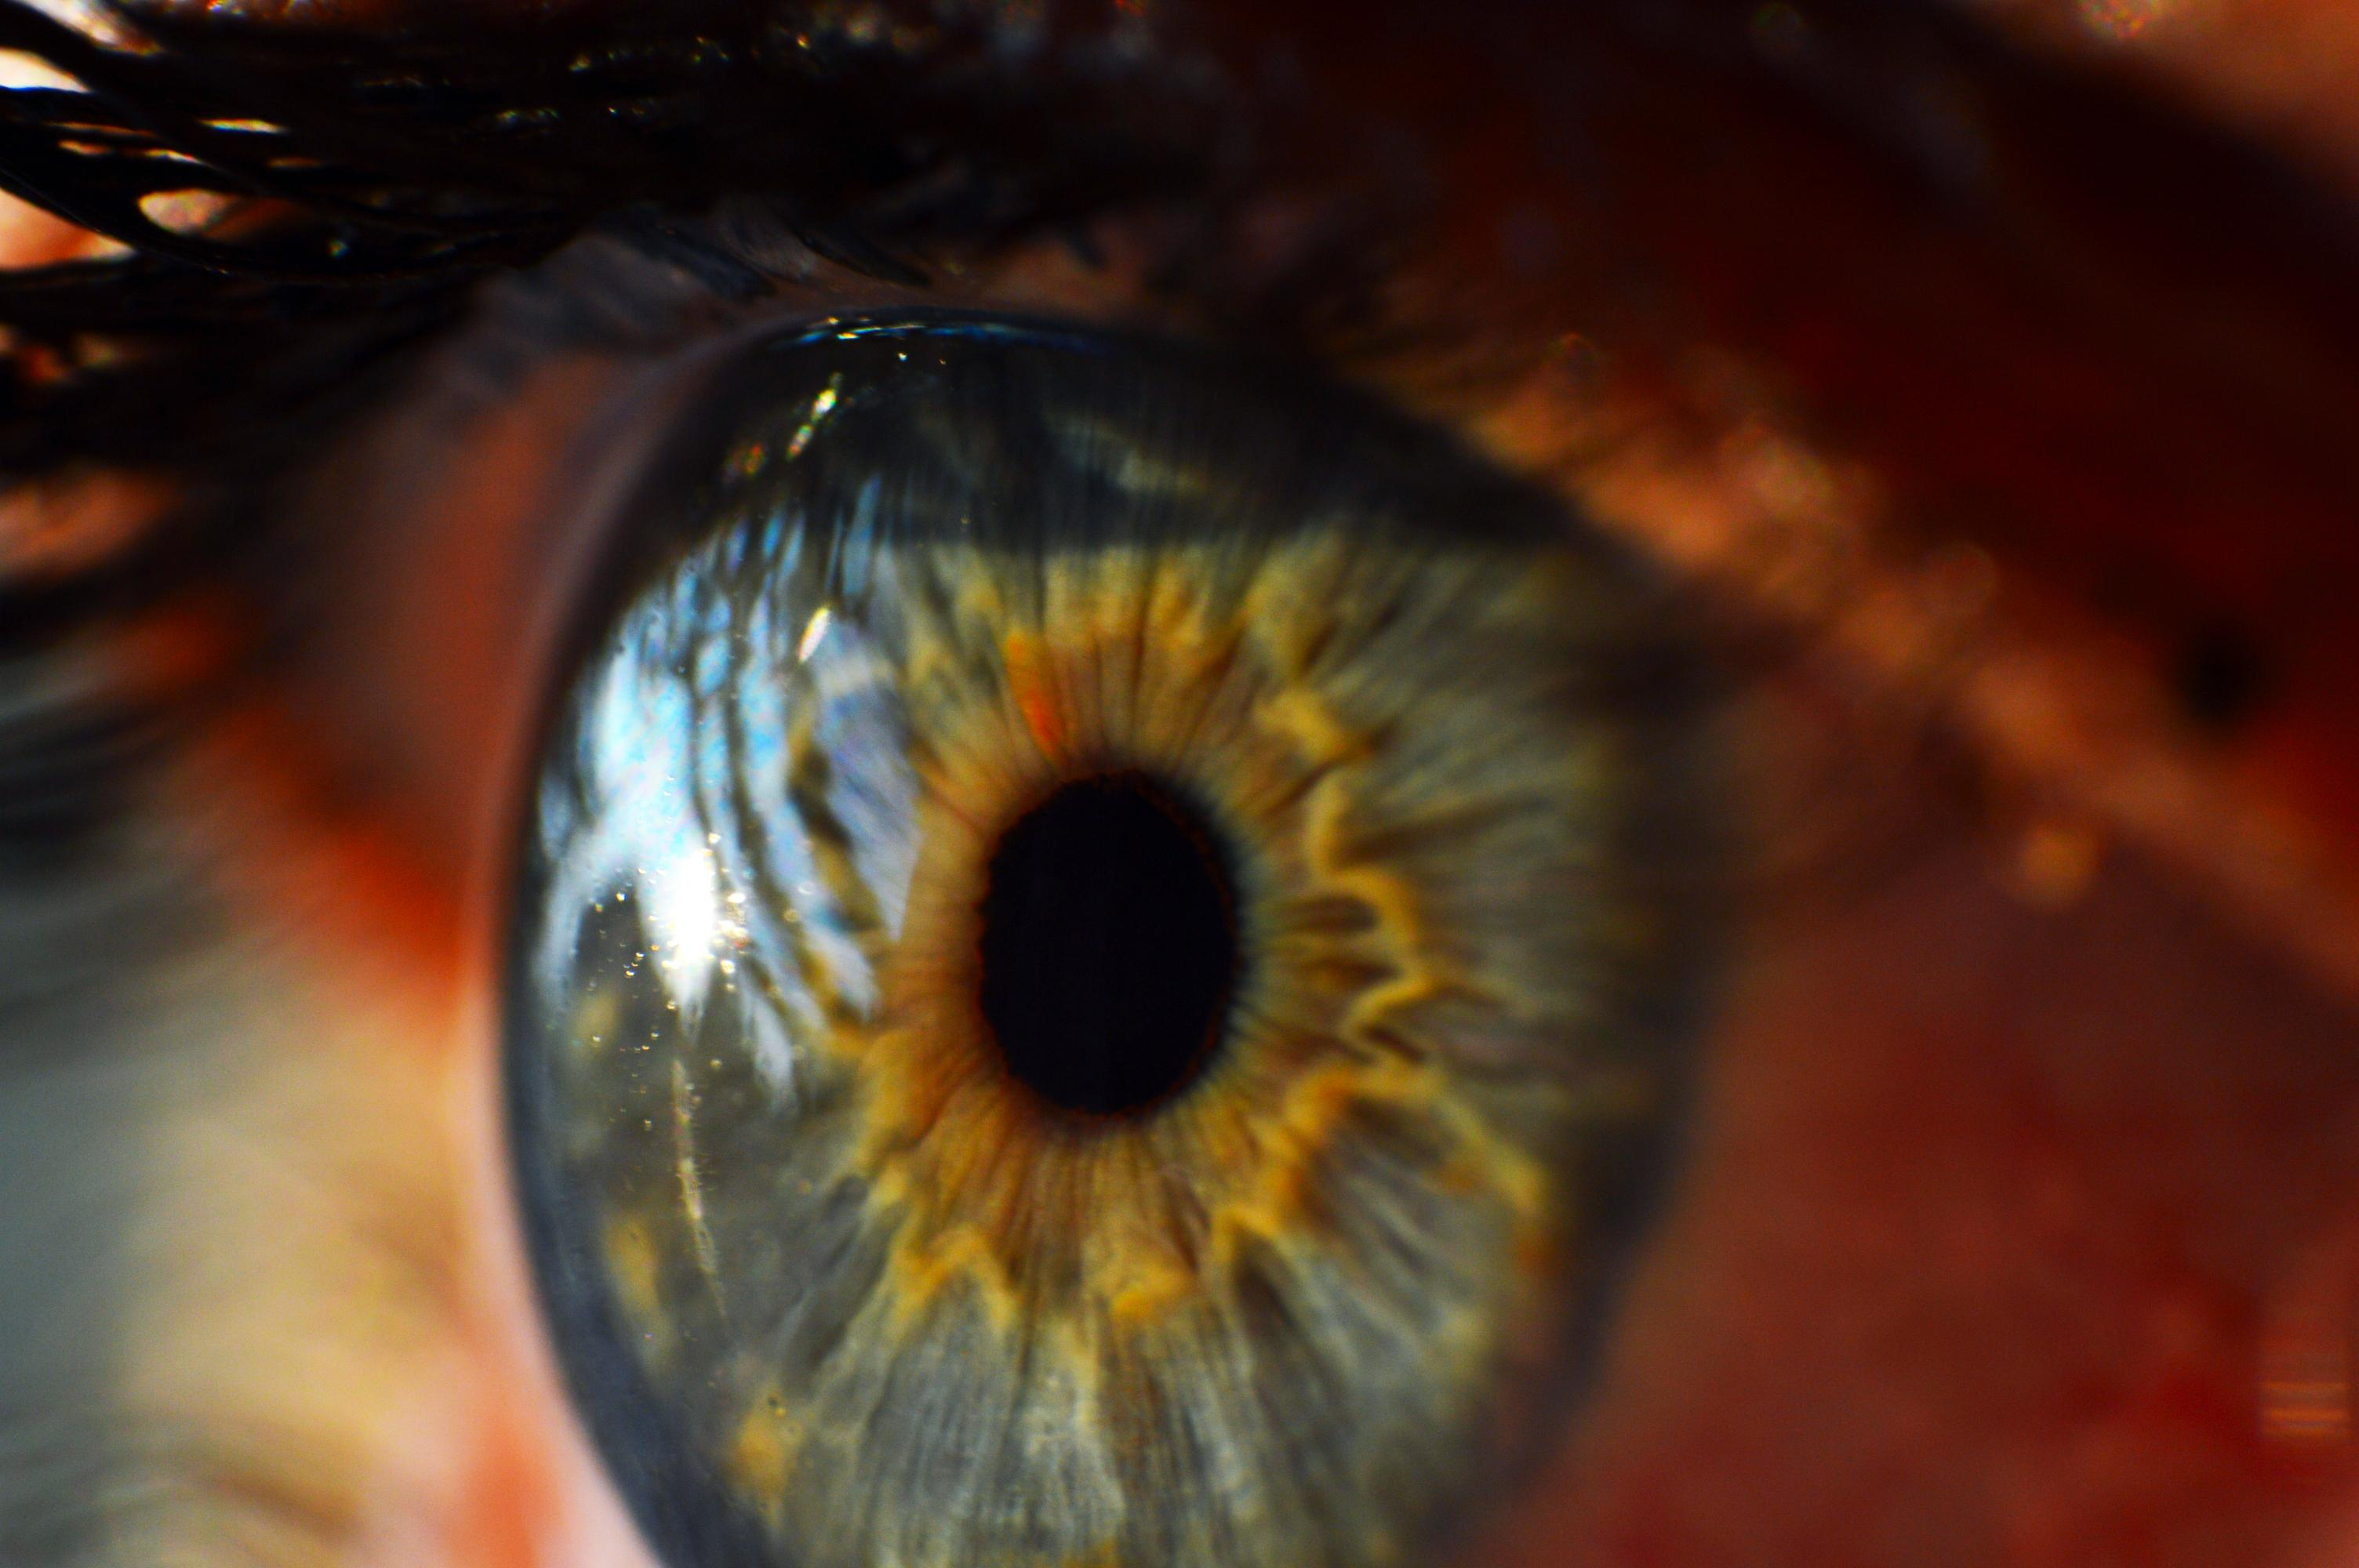 Researchers at Columbia University in New York have found that the gene ATF6 can lead to the vision disorder Achromatopsia.